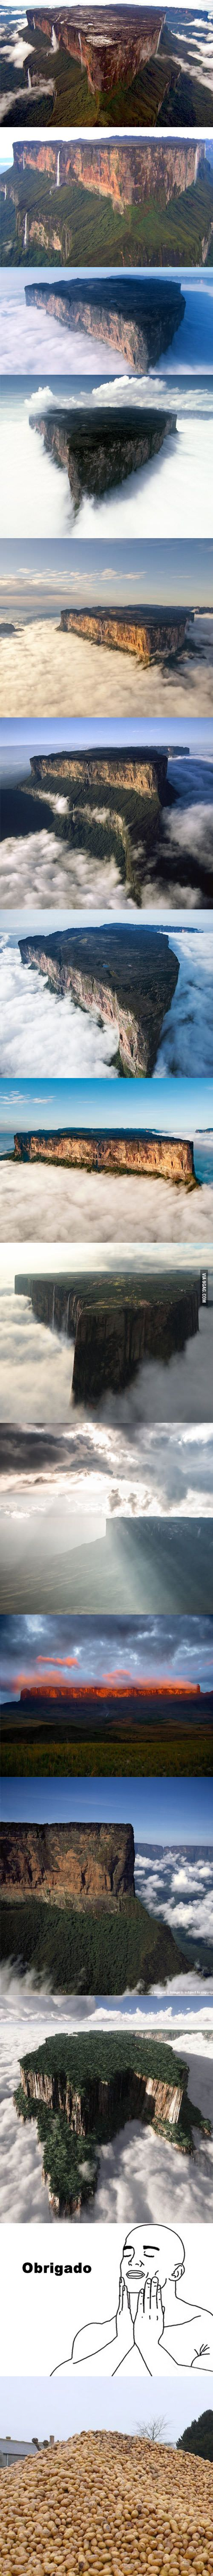 Venezuela, Mount Roraima. Cure for the OCD? - 9GAG